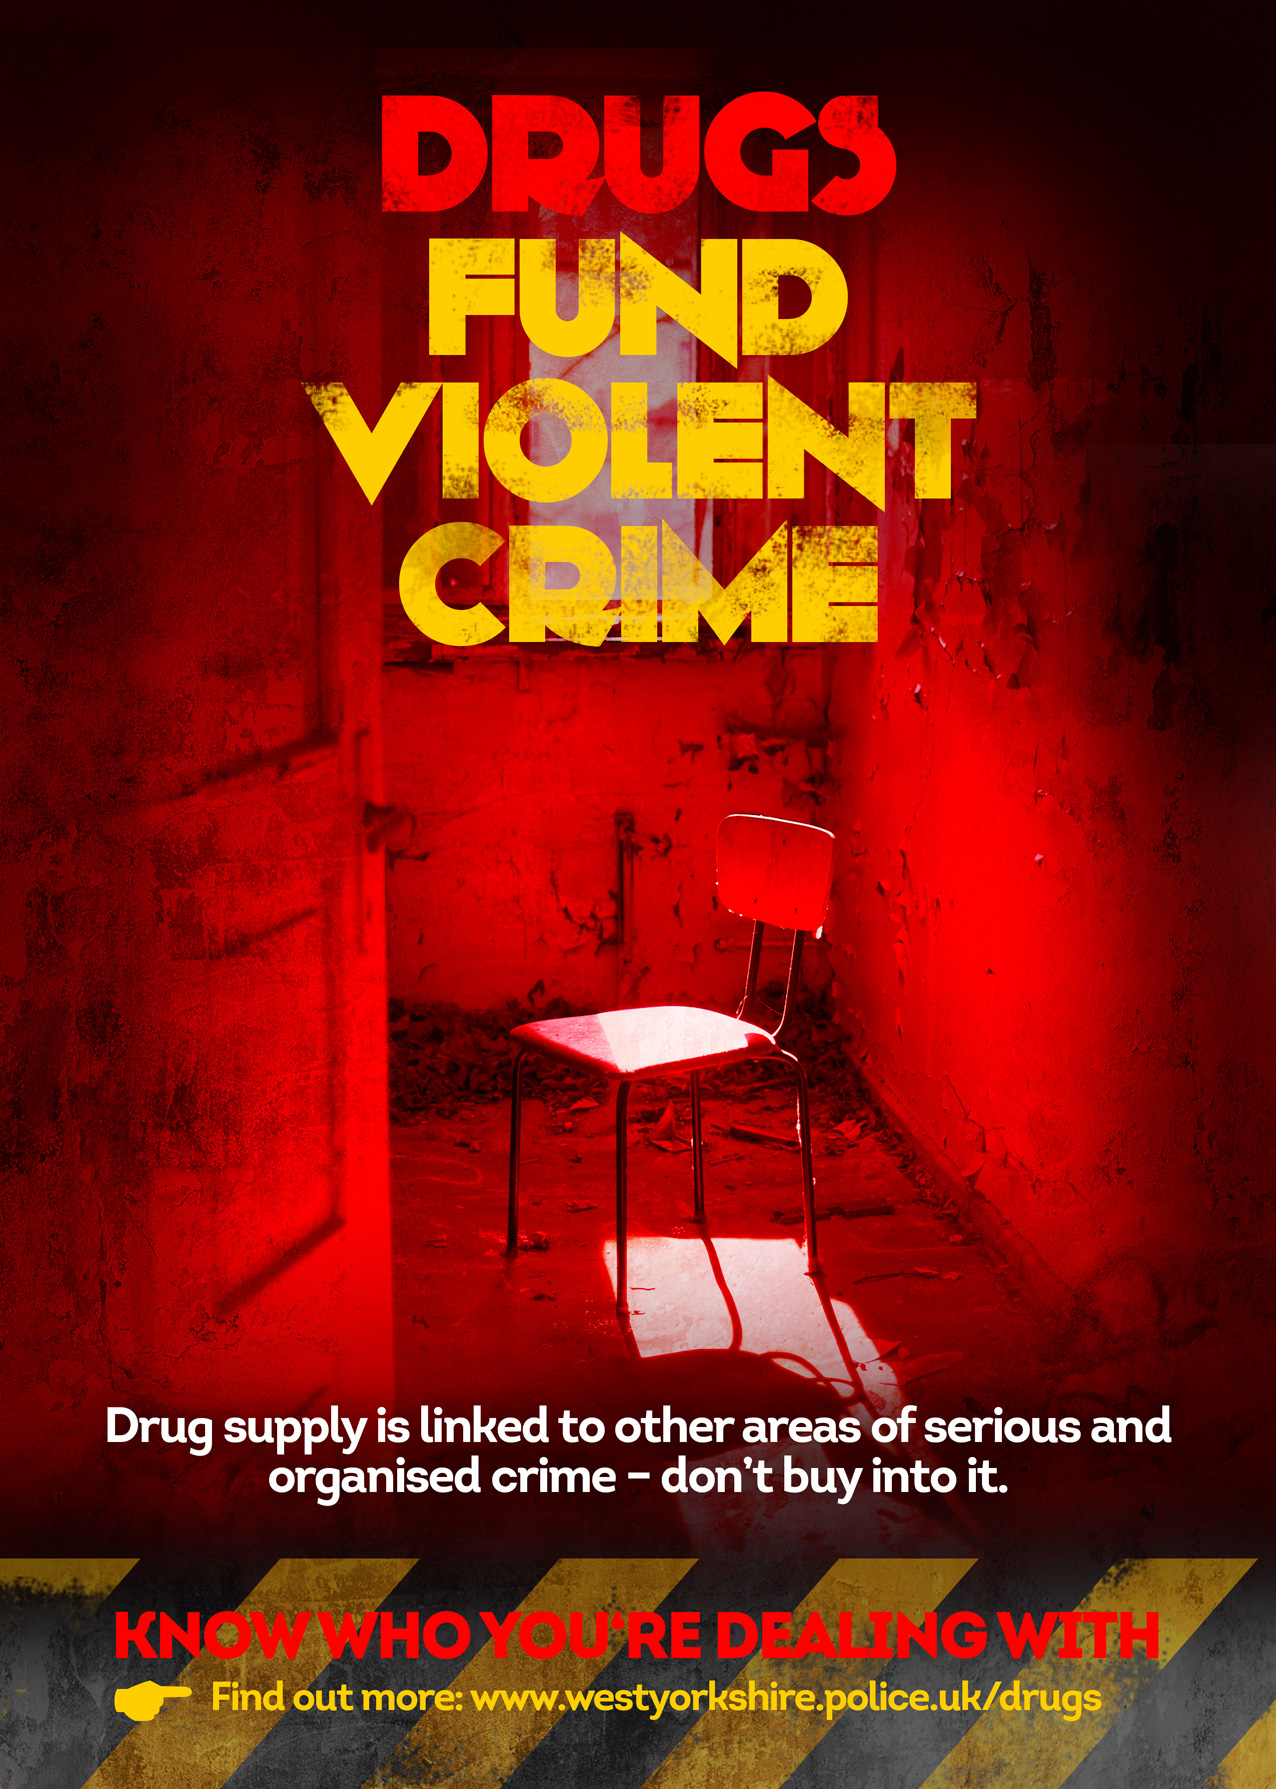 Drugs Fund Violent Crime Poster